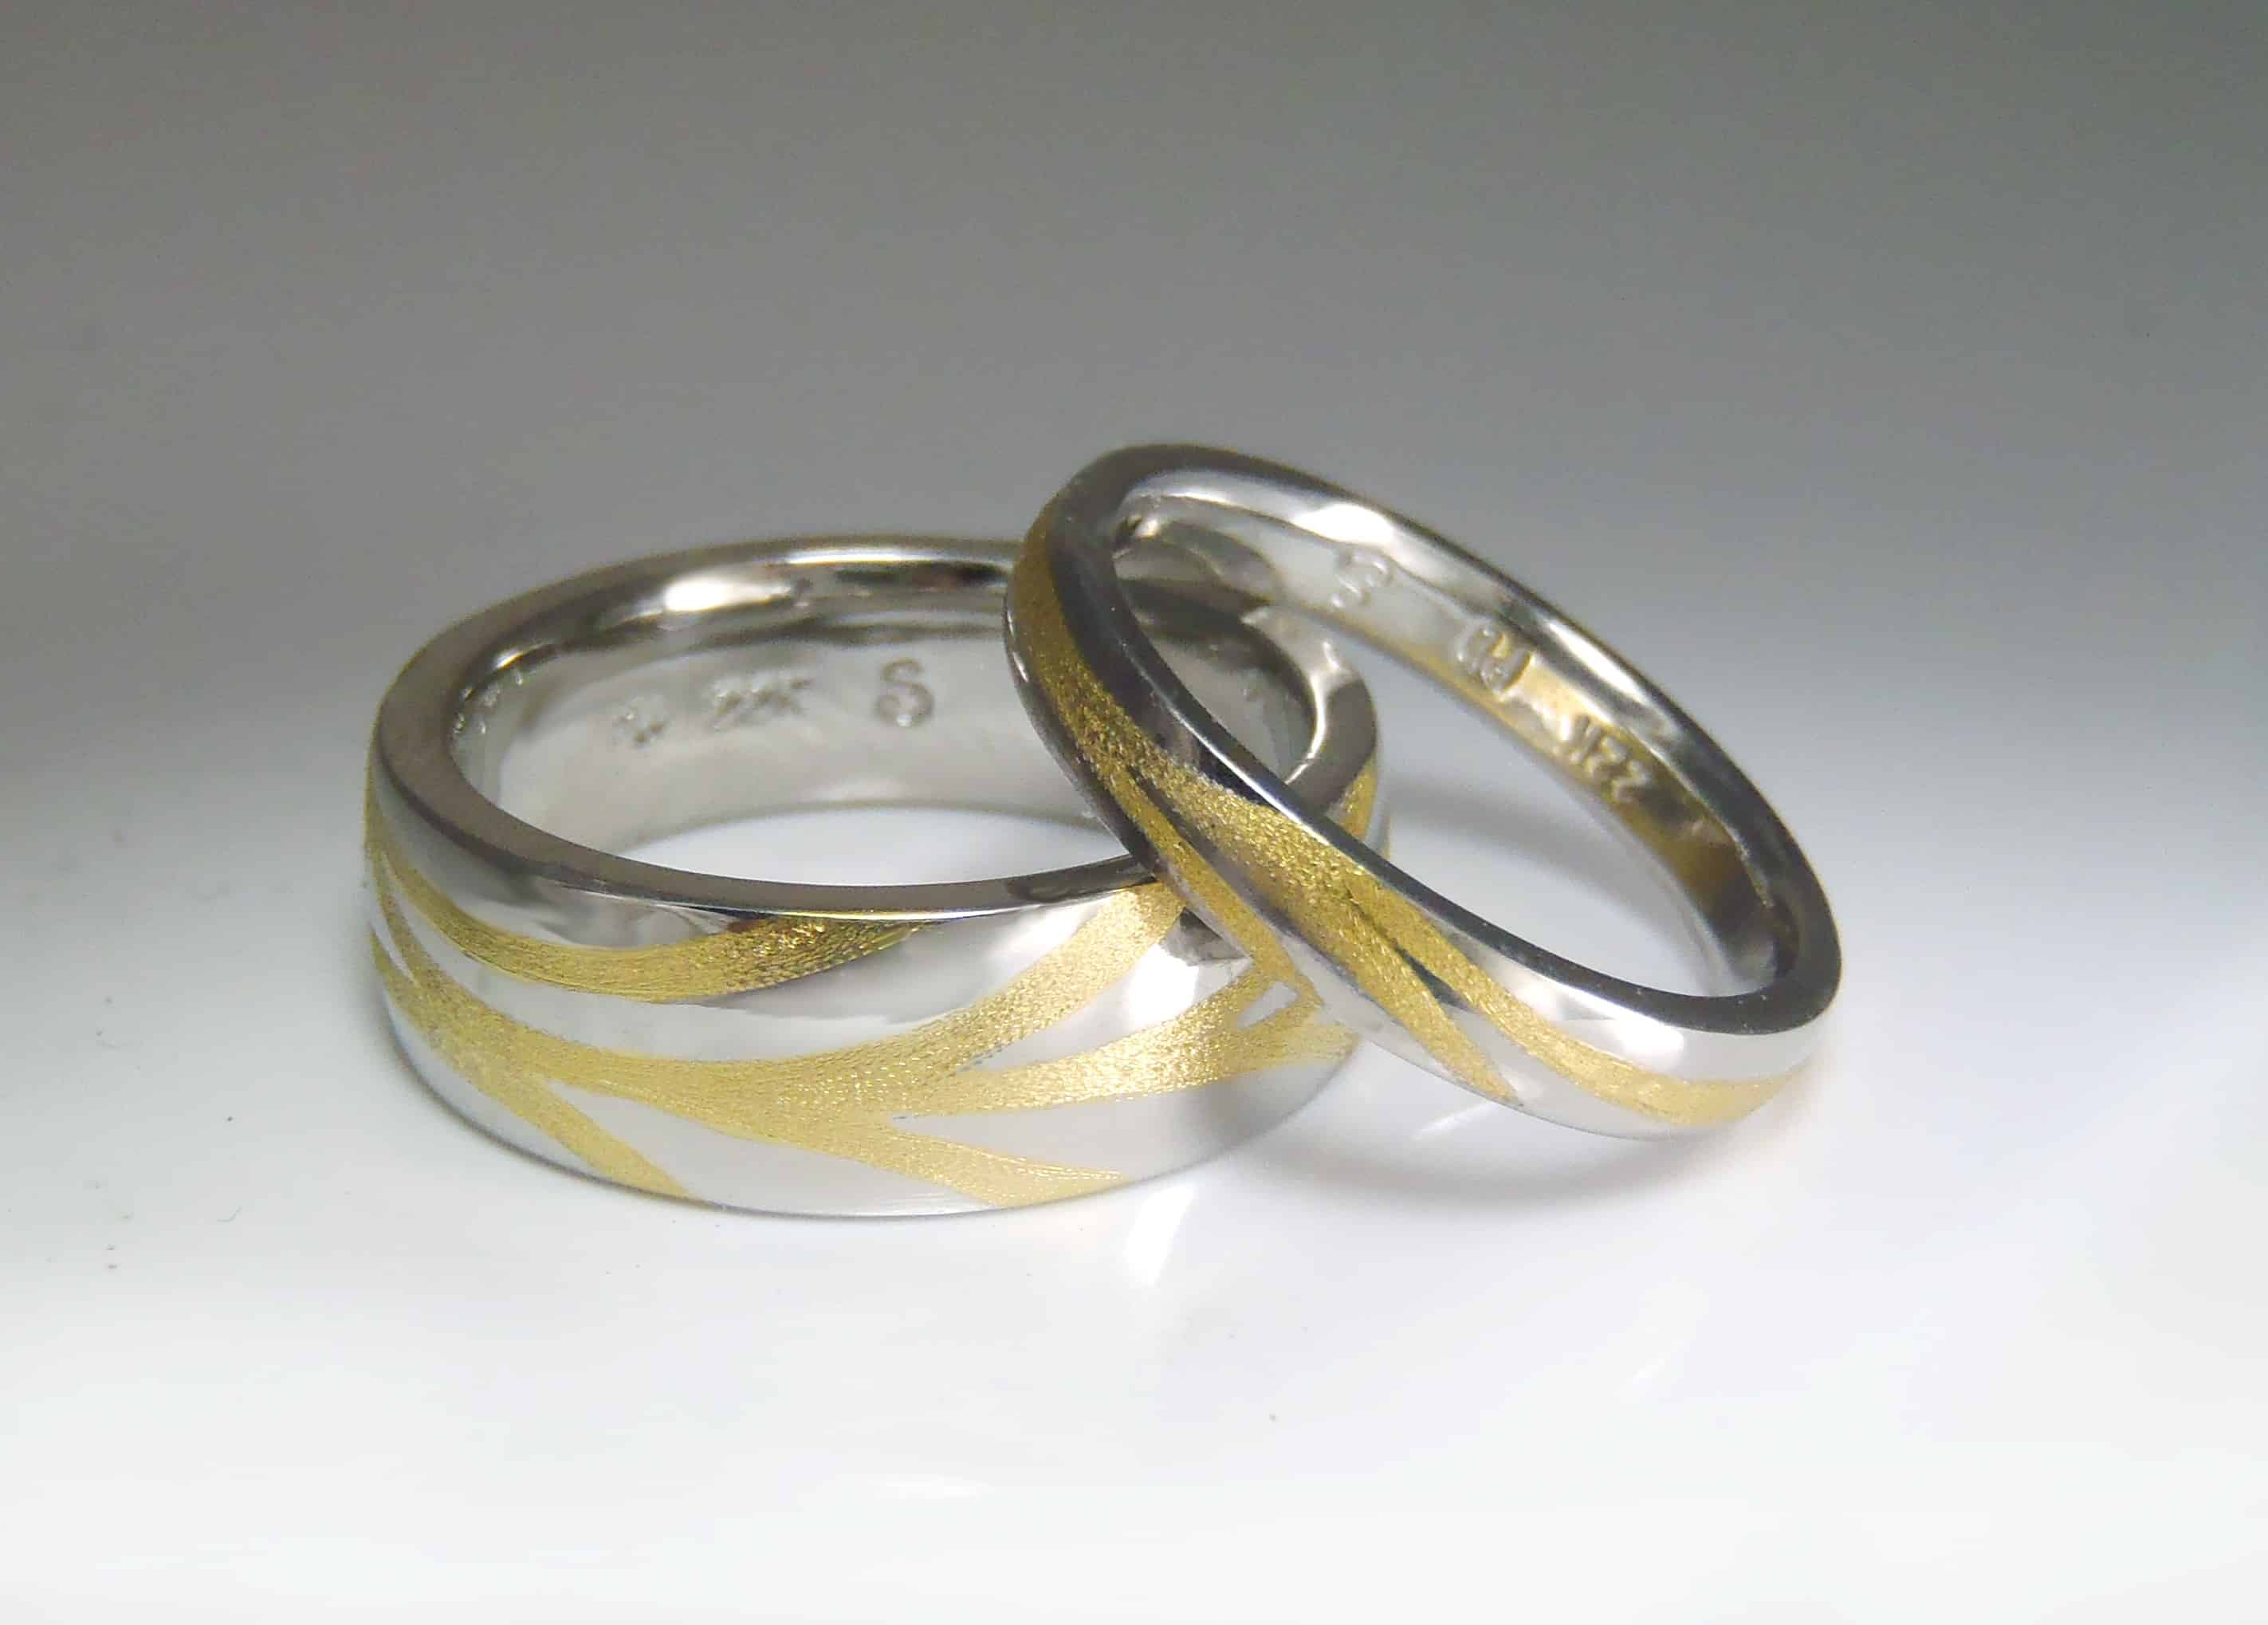 wedding zvretouch ring on his bands brilliant news pair jewellery white earth now hers rings matching shop